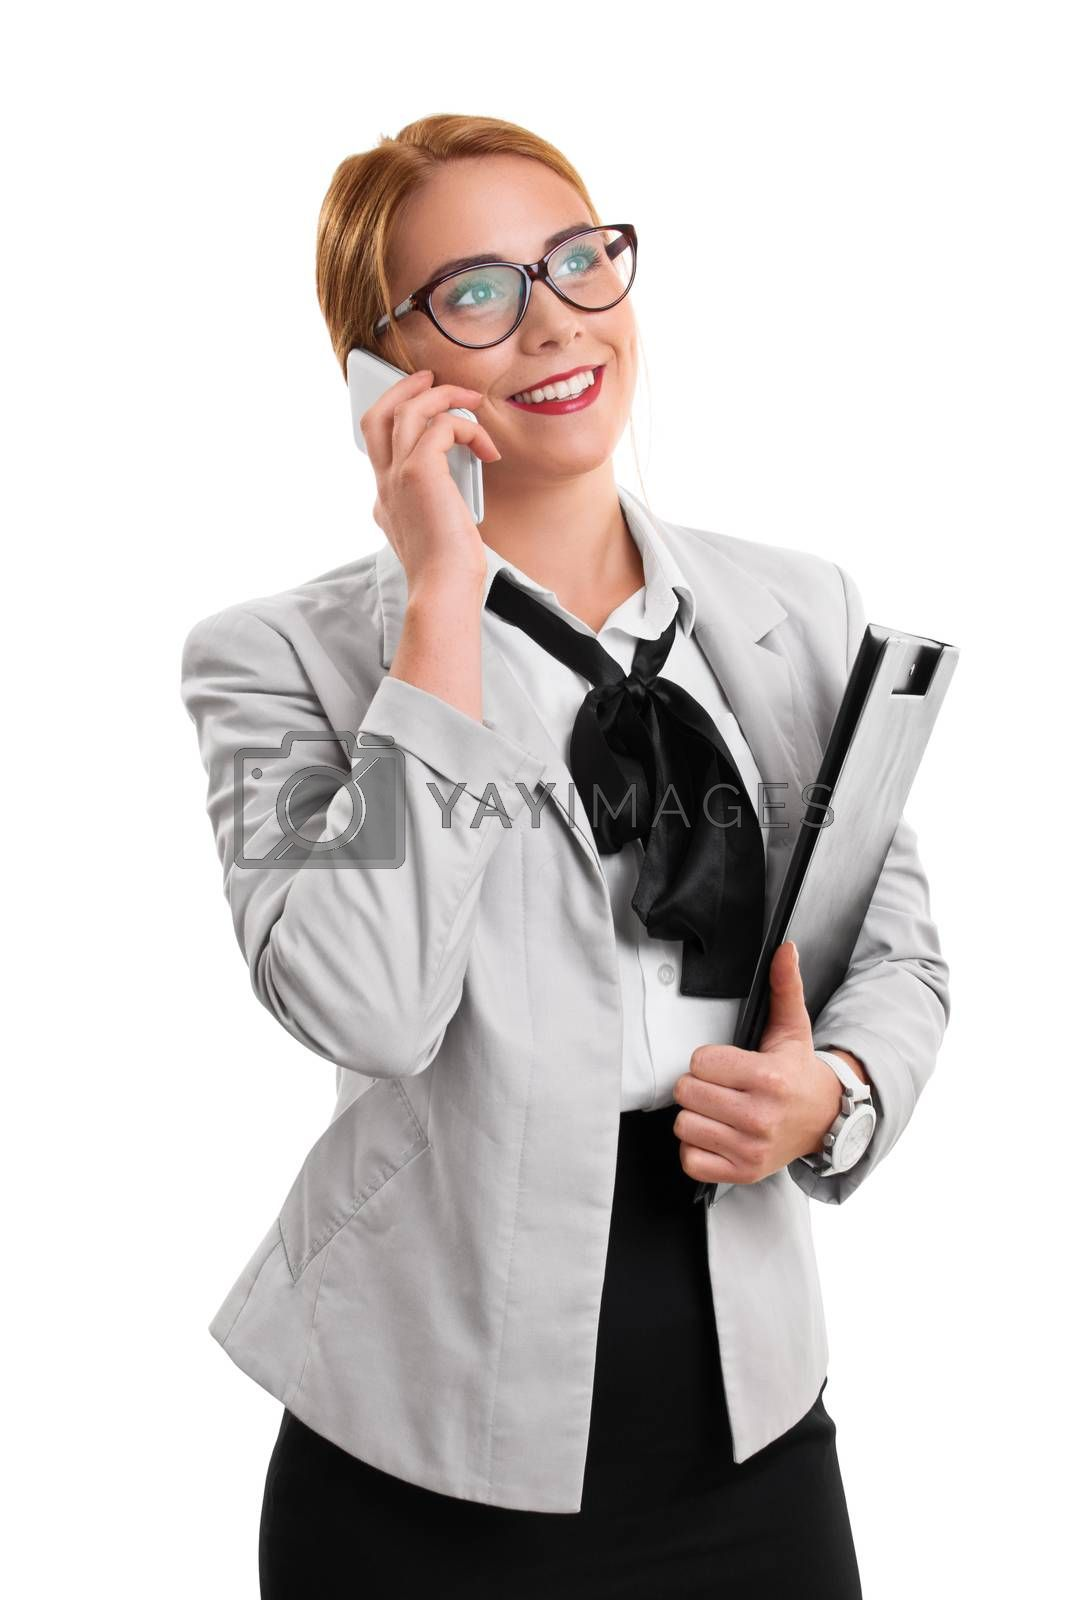 A portrait of a businesswoman talking on the phone, holding a notepad, isolated on white background.